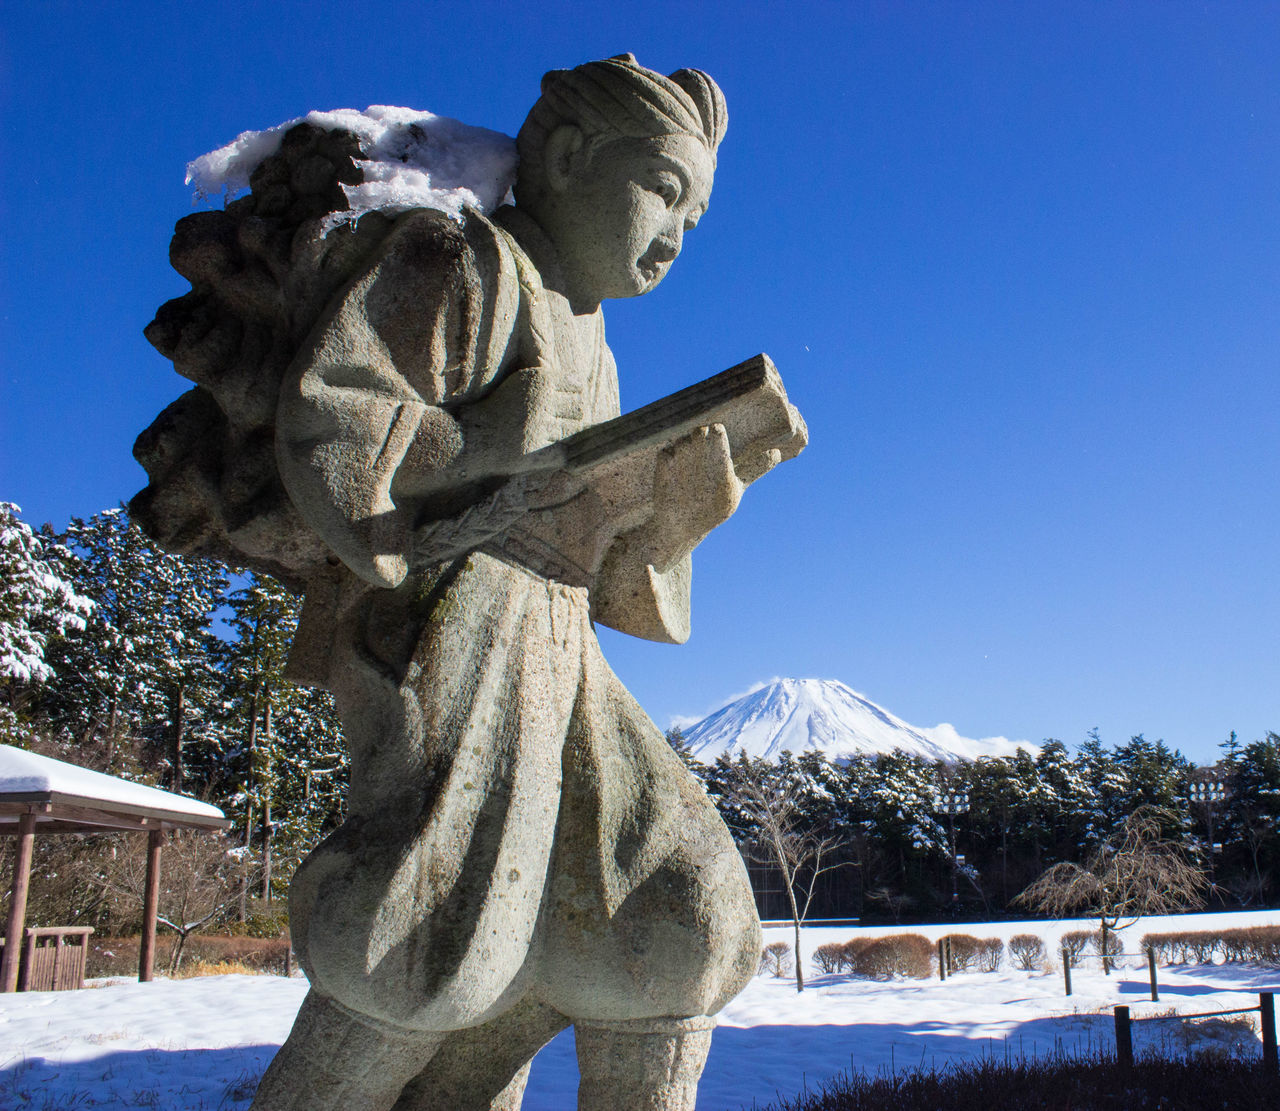 Low Angle View Of Stone Sculpture With Snow Against Sky